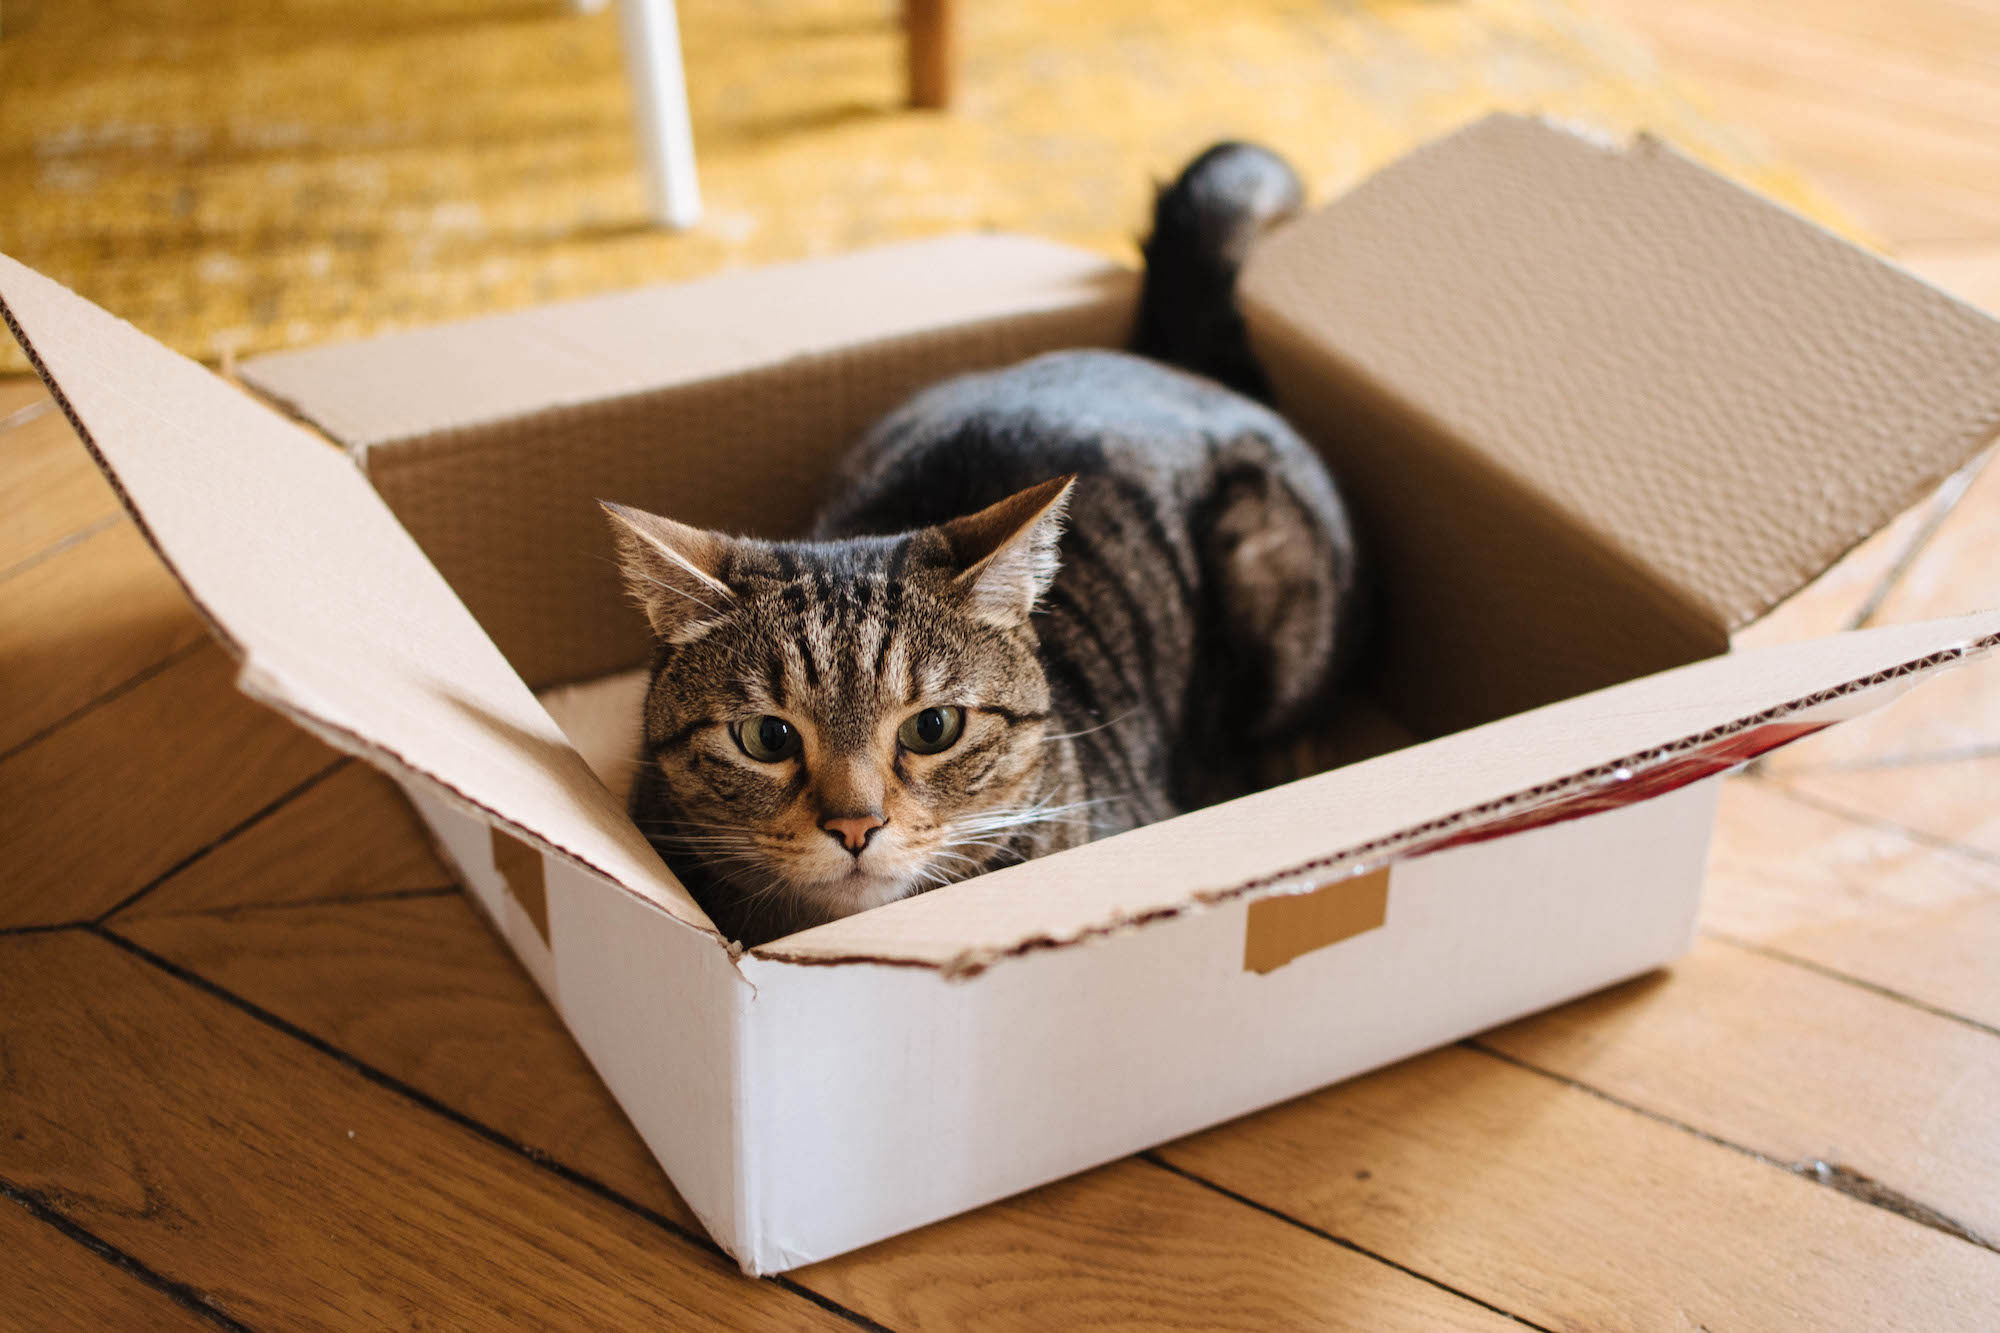 Lindsey Tramuta's cat Charlie sitting in a cardboard box in their apartment in Paris' 11th arrondissement.